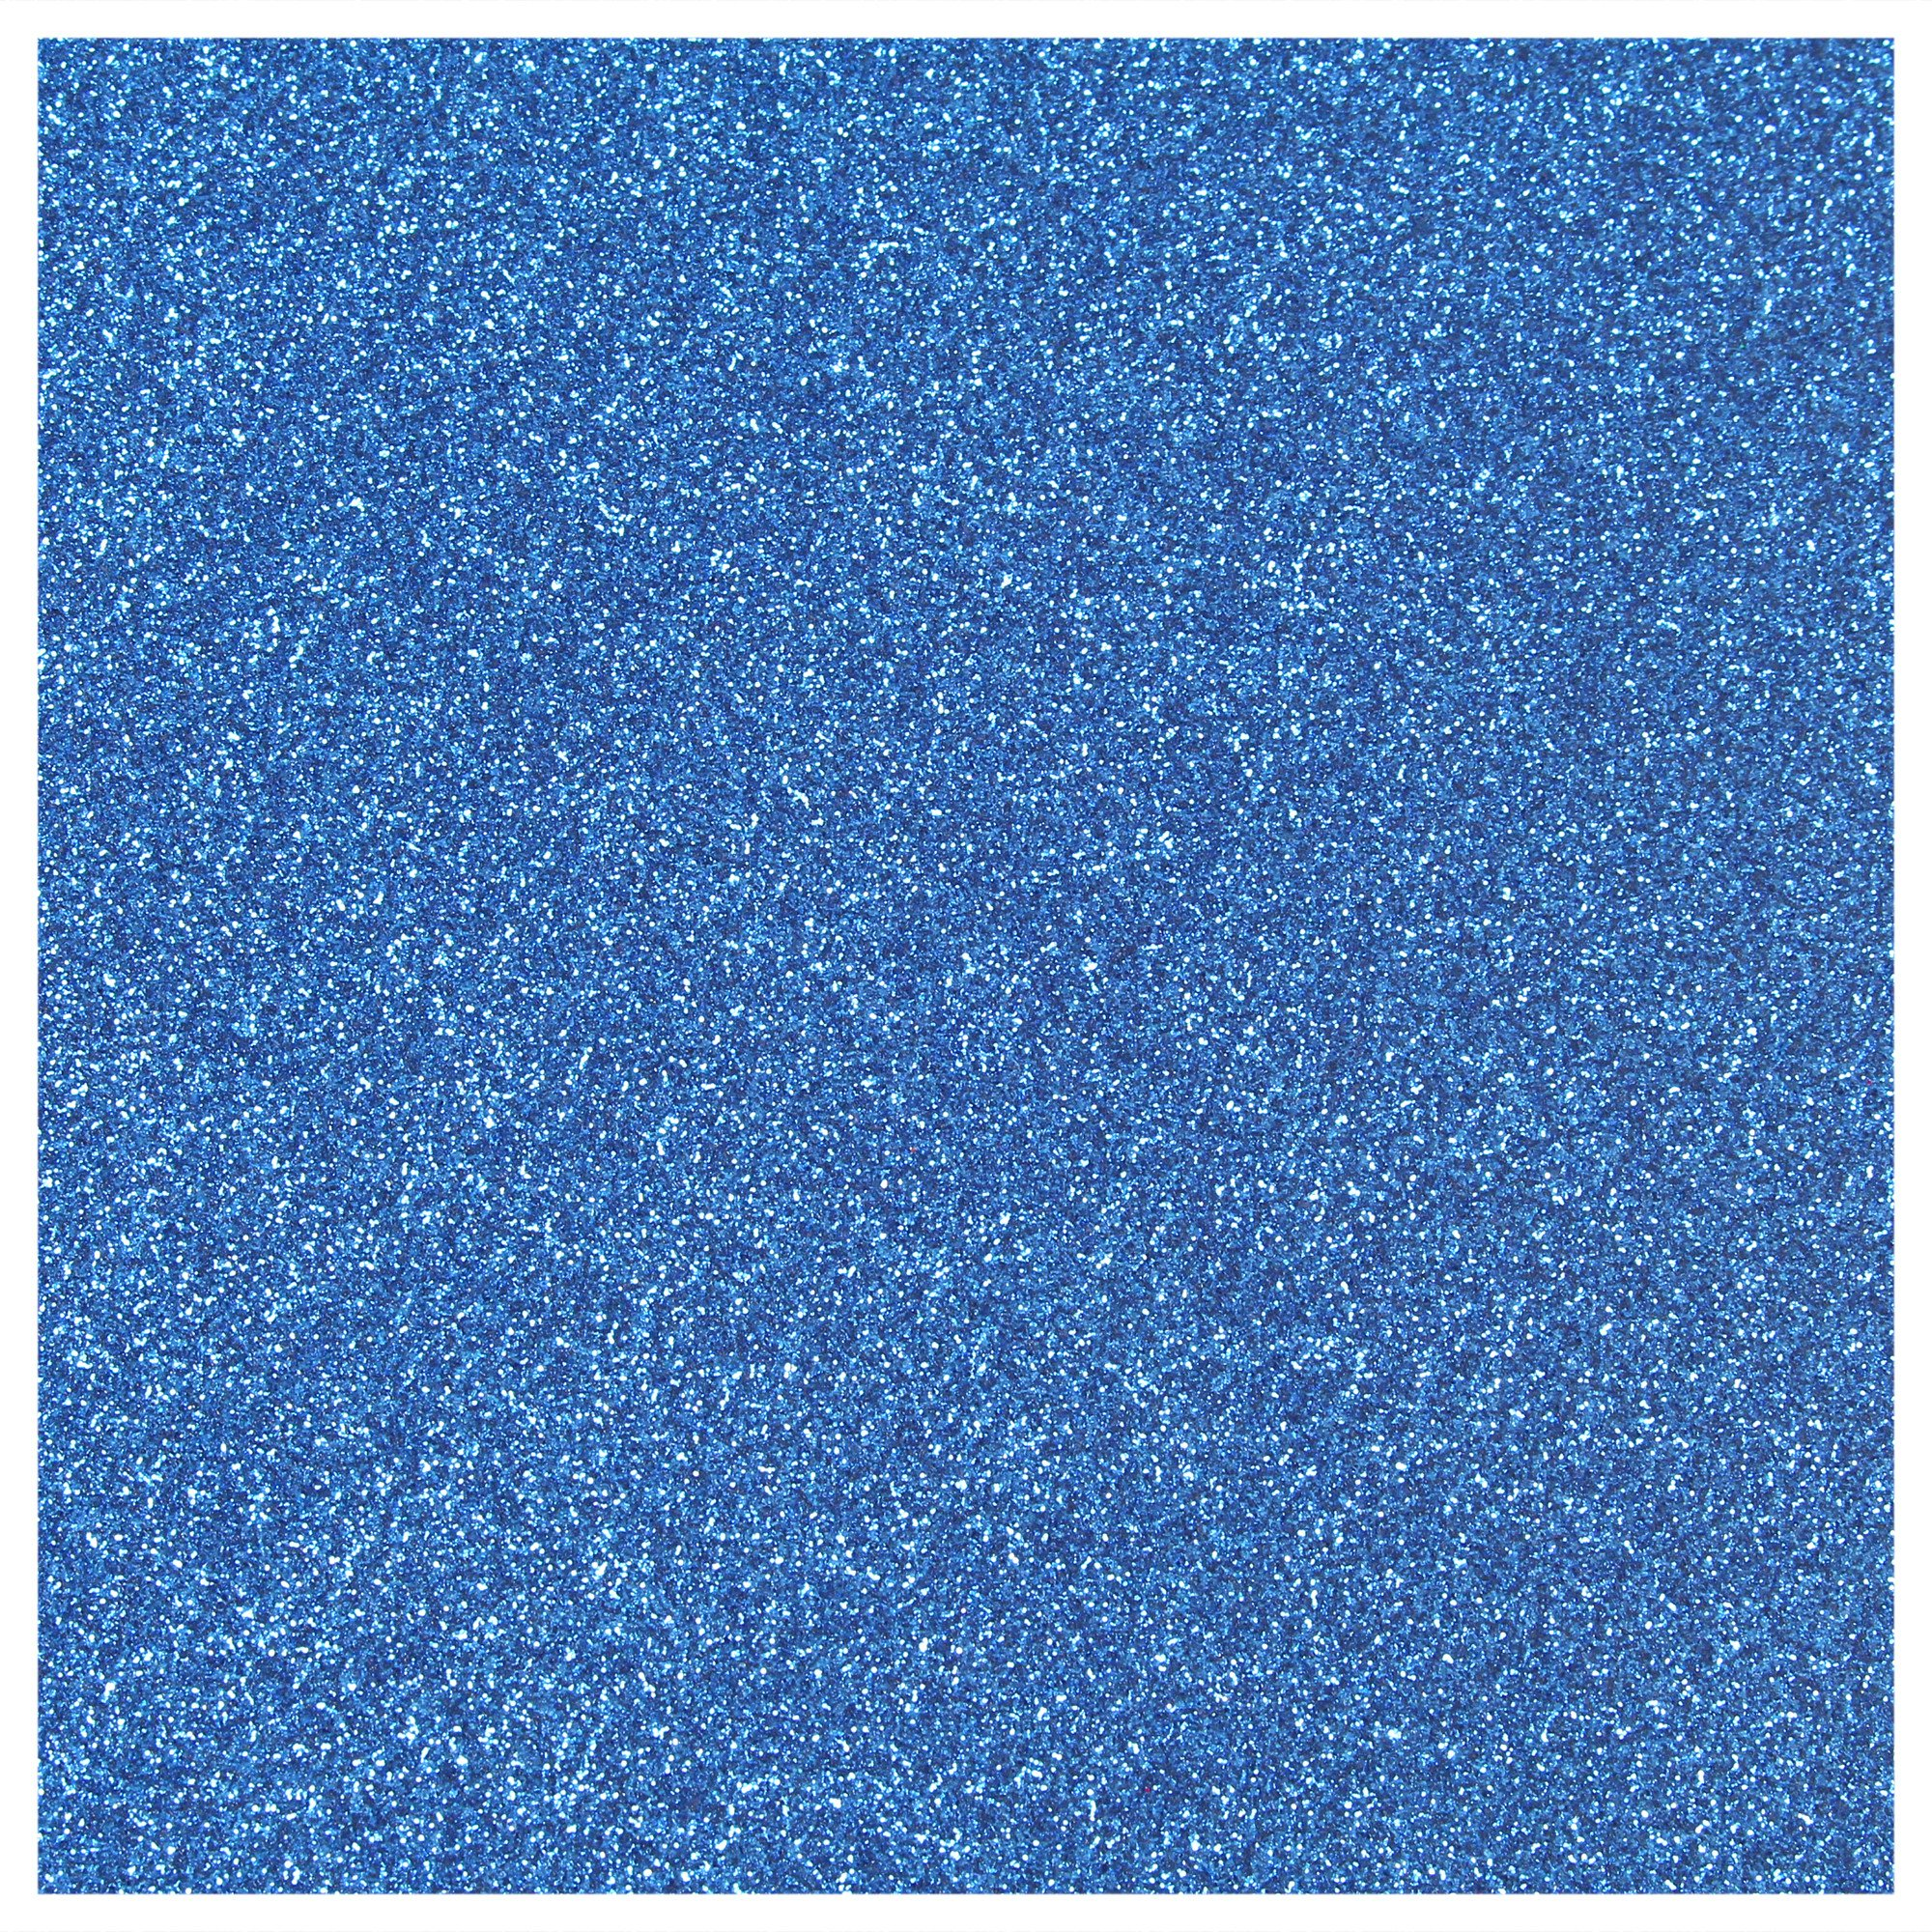 Siser Glitter Heat Transfer Material 20 in x 150 Foot Roll - 45 Colors Available